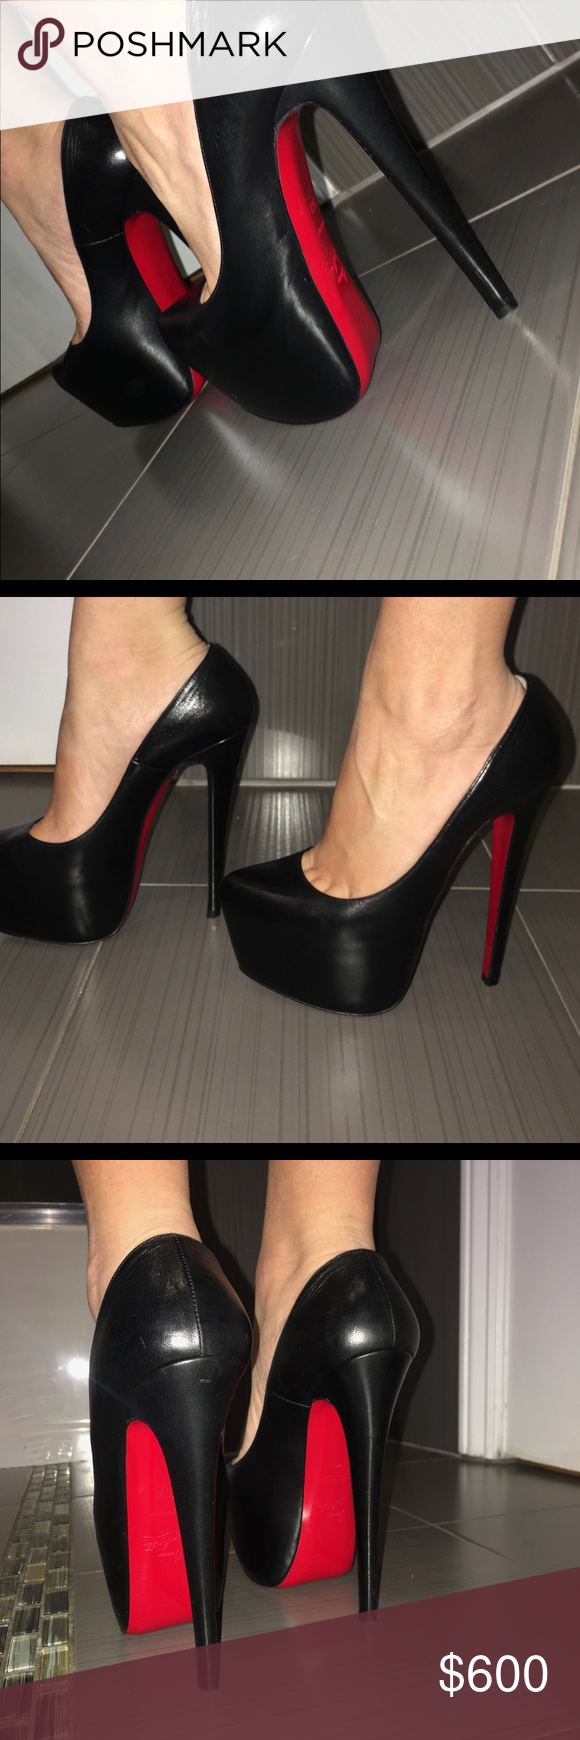 Christian Louboutin Black Heels Daffidlole 6.5 Worn these 2-3 times only. Like brand new comes with dust bag and box Christian Louboutin Shoes Heels